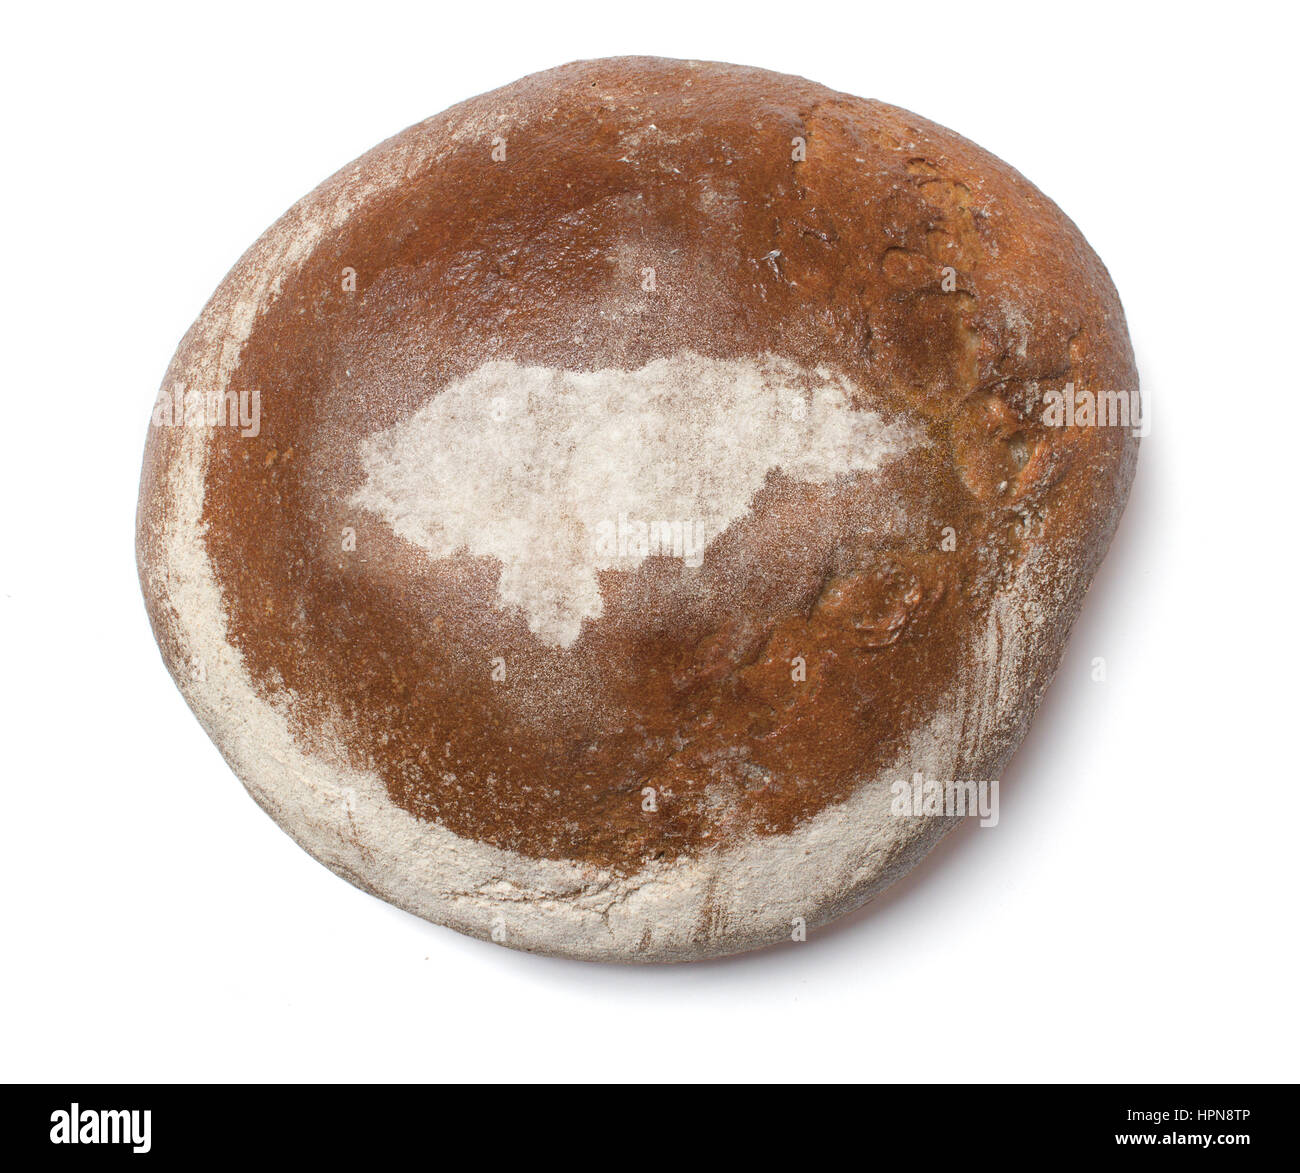 A freshly baked loaf of bread covered with rye flour in the shape of Honduras.(series) Stock Photo